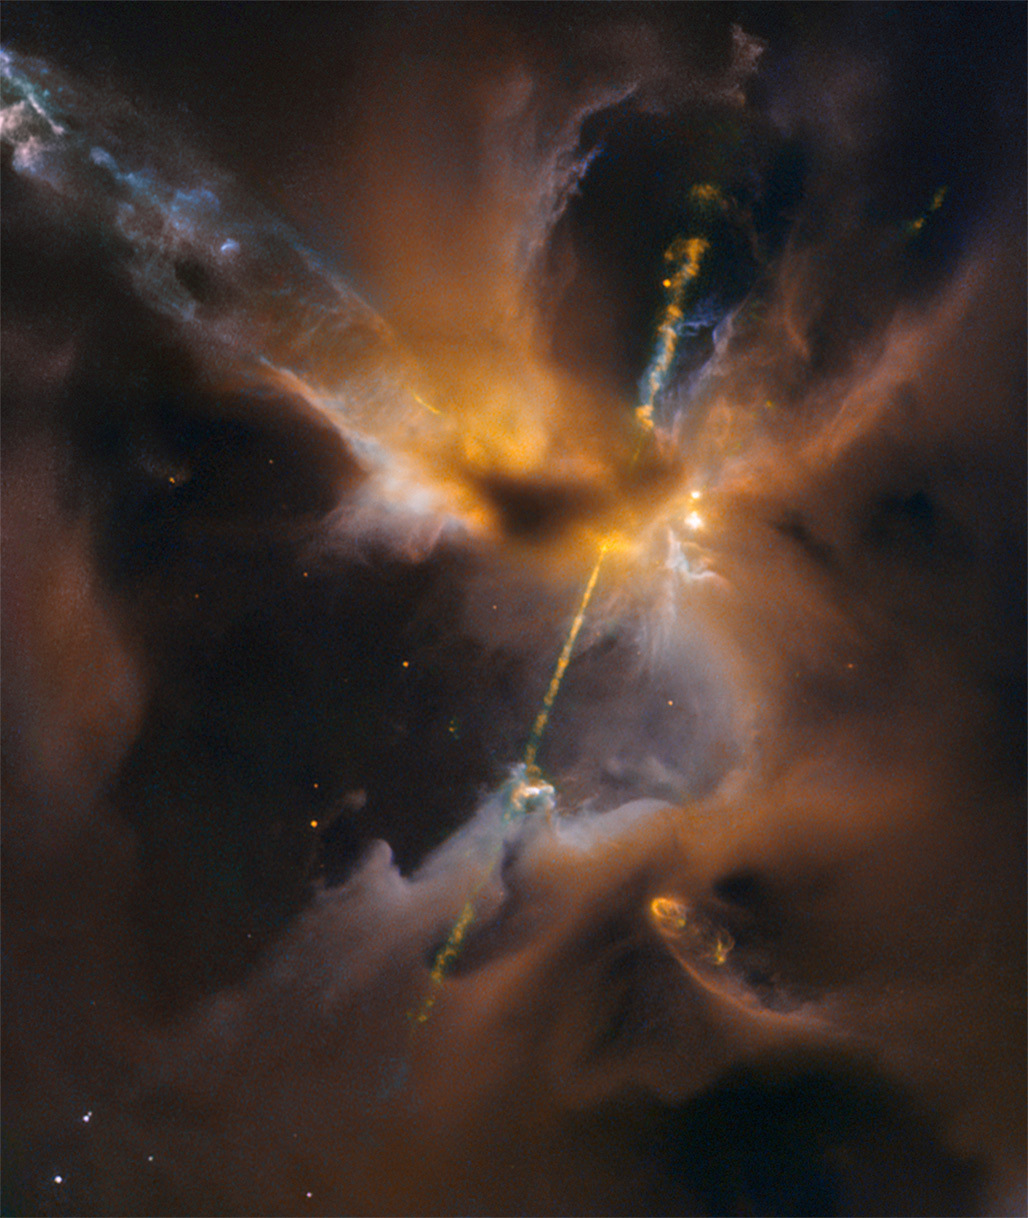 The two lightsabre-like streams crossing the image are jets of energised gas, ejected from the poles of a young star. If the jets collide with the surrounding gas and dust they can clear vast spaces, and create curved shock waves, seen as knotted clumps called Herbig-Haro objects. Image credit: ESA/Hubble & NASA, D. Padgett (GSFC), T. Megeath (University of Toledo), and B. Reipurth (University of Hawaii).